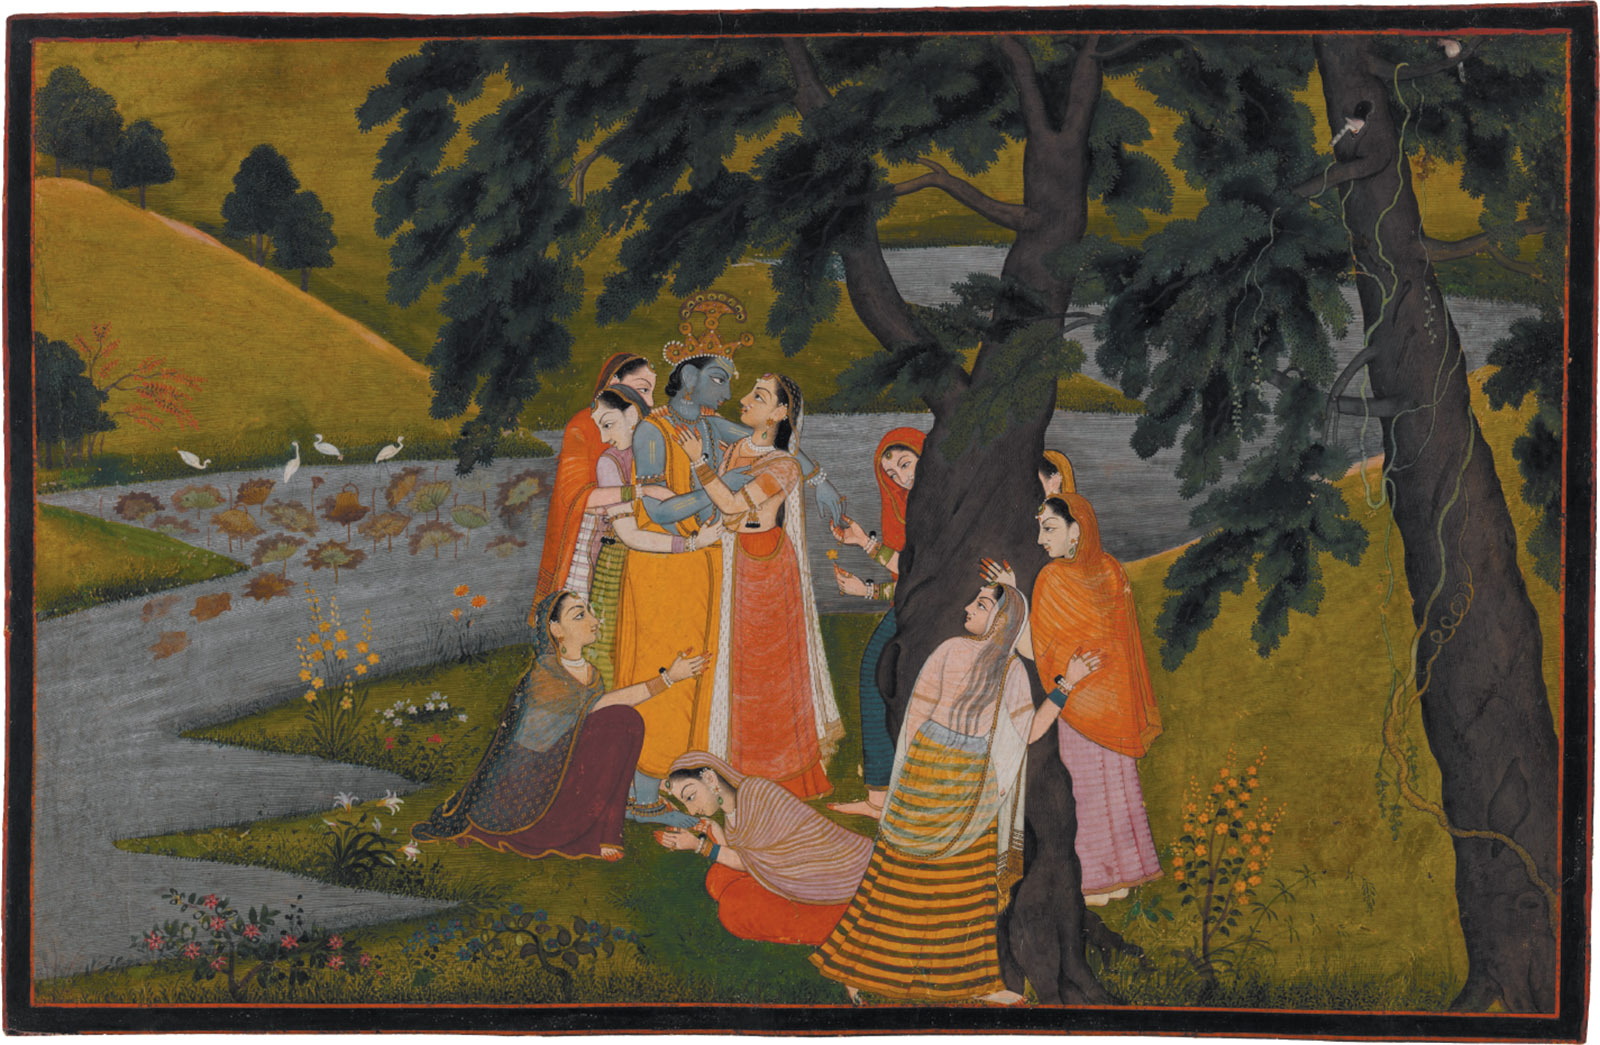 'Krishna and the Gopis on the Bank of the Yamuna River'; miniature painting from the 'Tehri Garwhal' Gita Govinda, circa 1775–1780